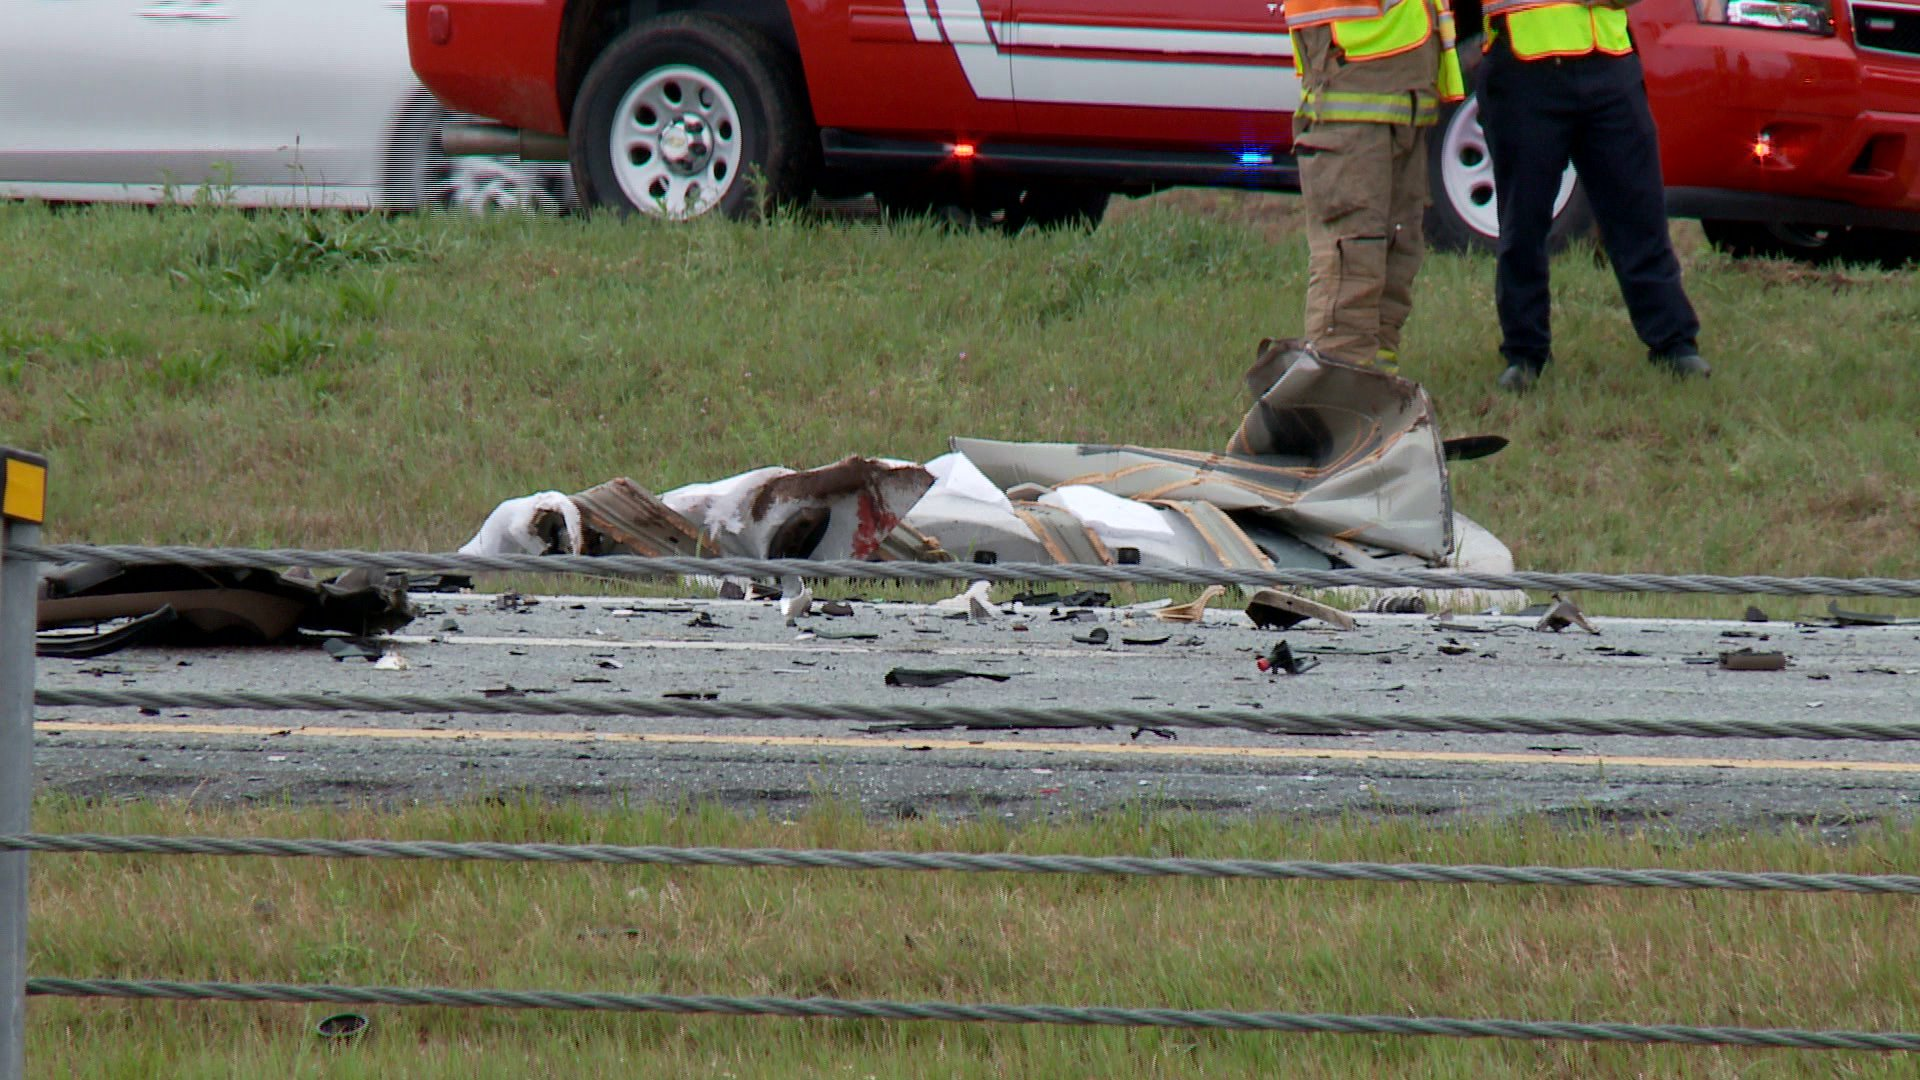 Double fatality accident on I-35 near Covell